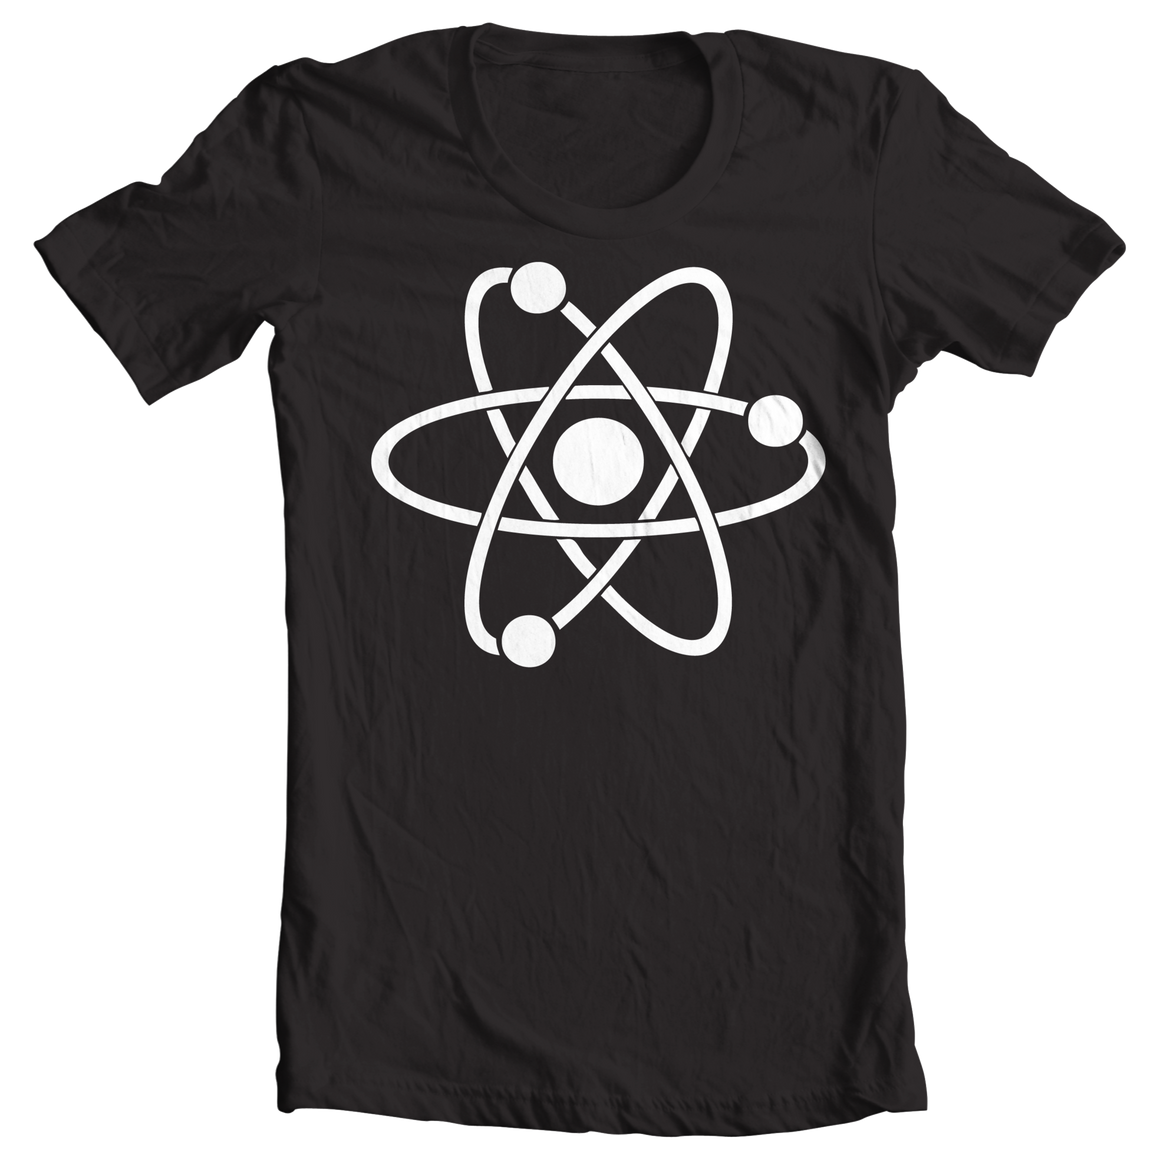 The Atom T-shirt - The Great T-shirt Store.com